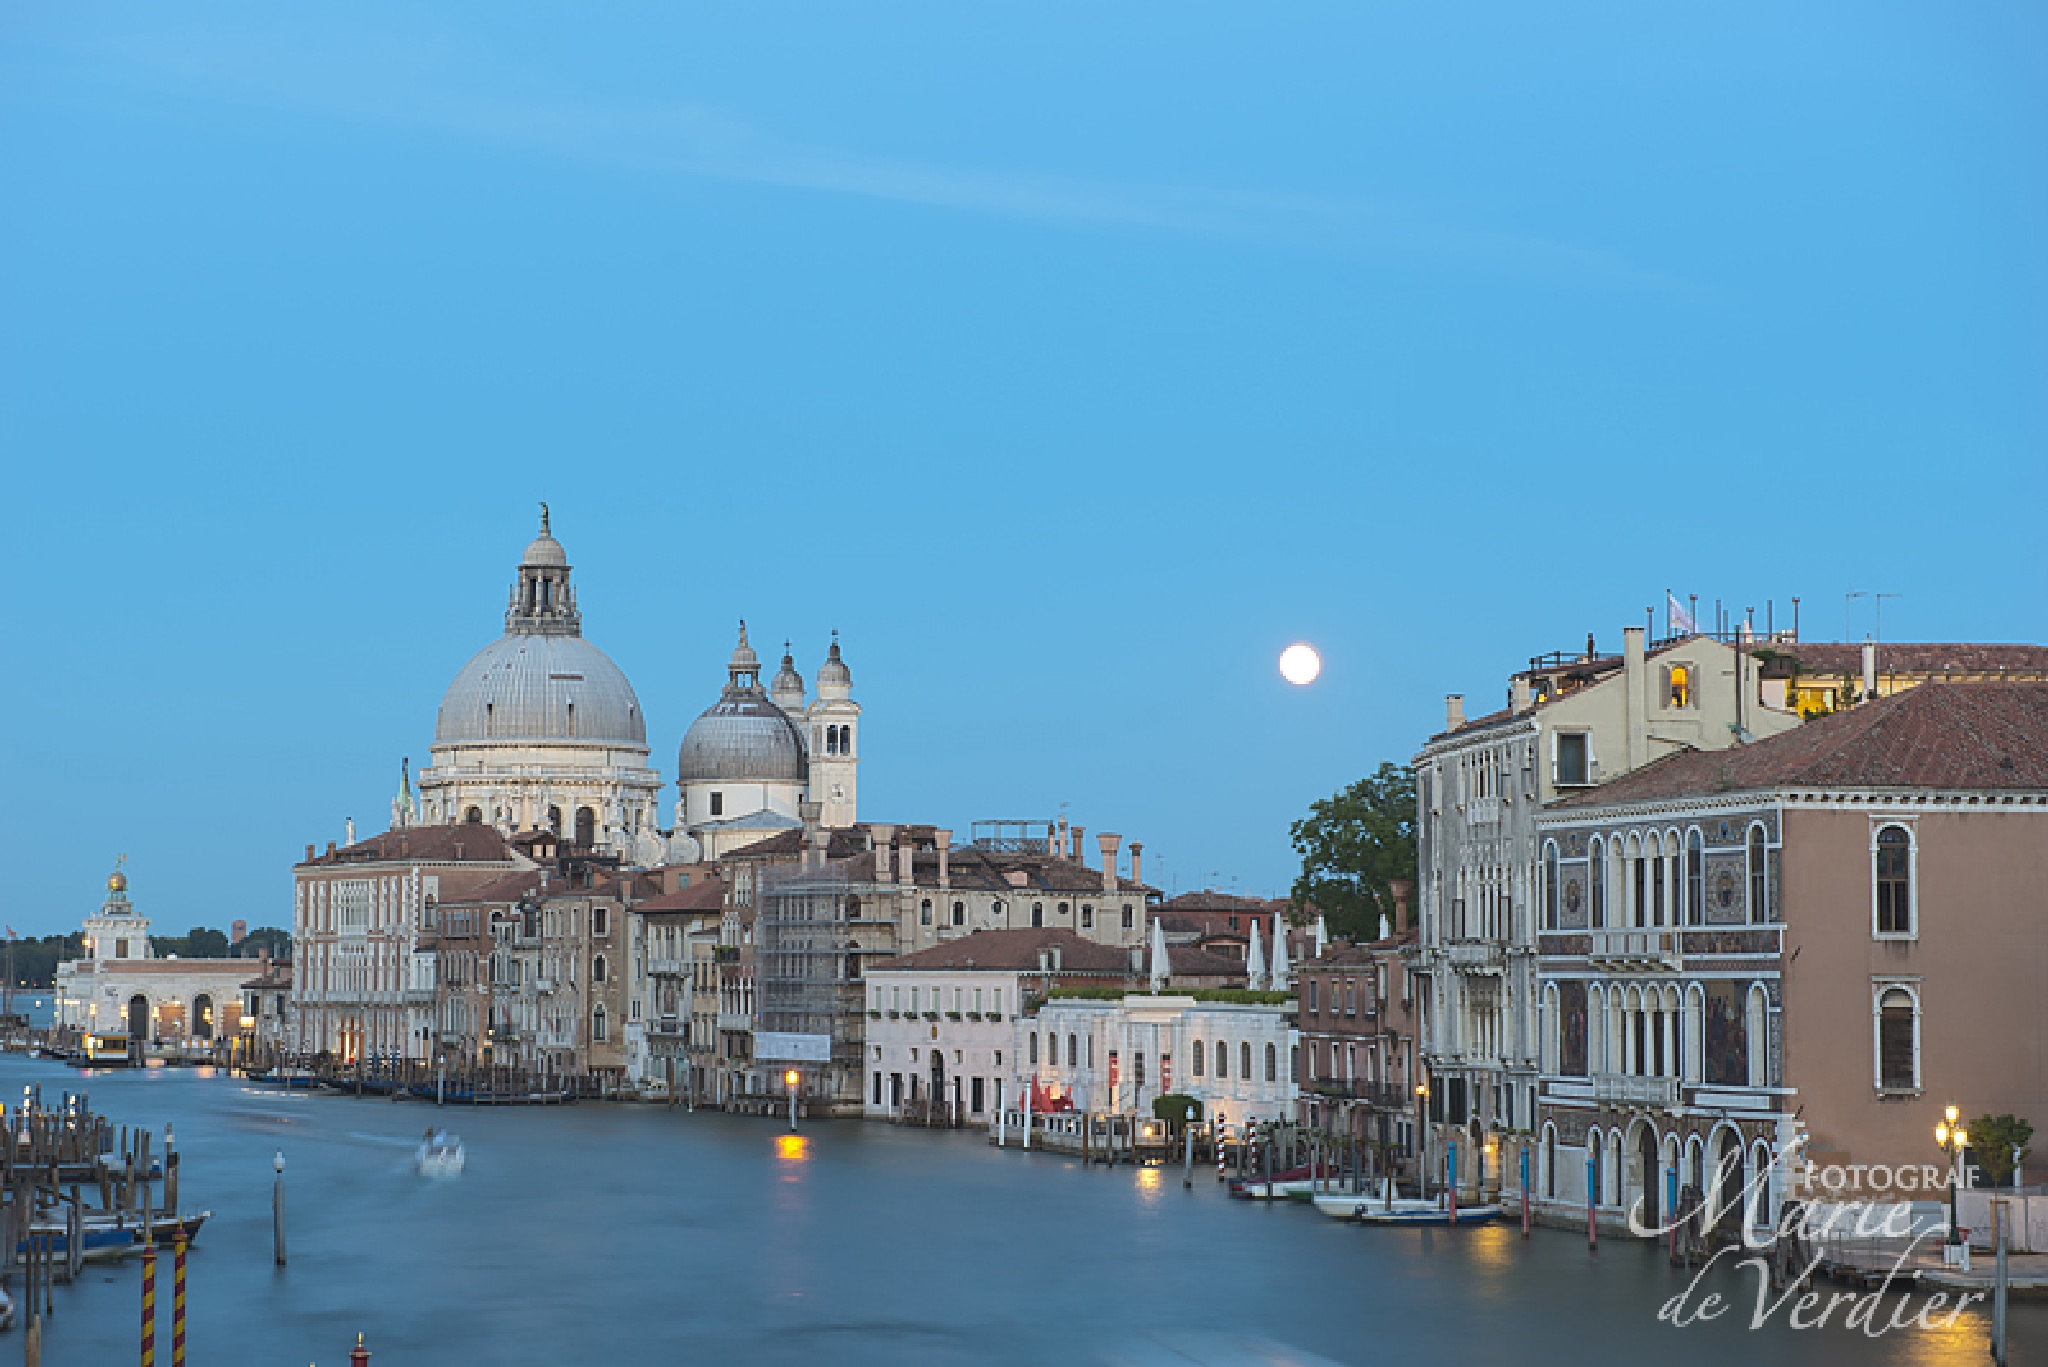 Canal Grande and full moon by marie.deverdier.persson